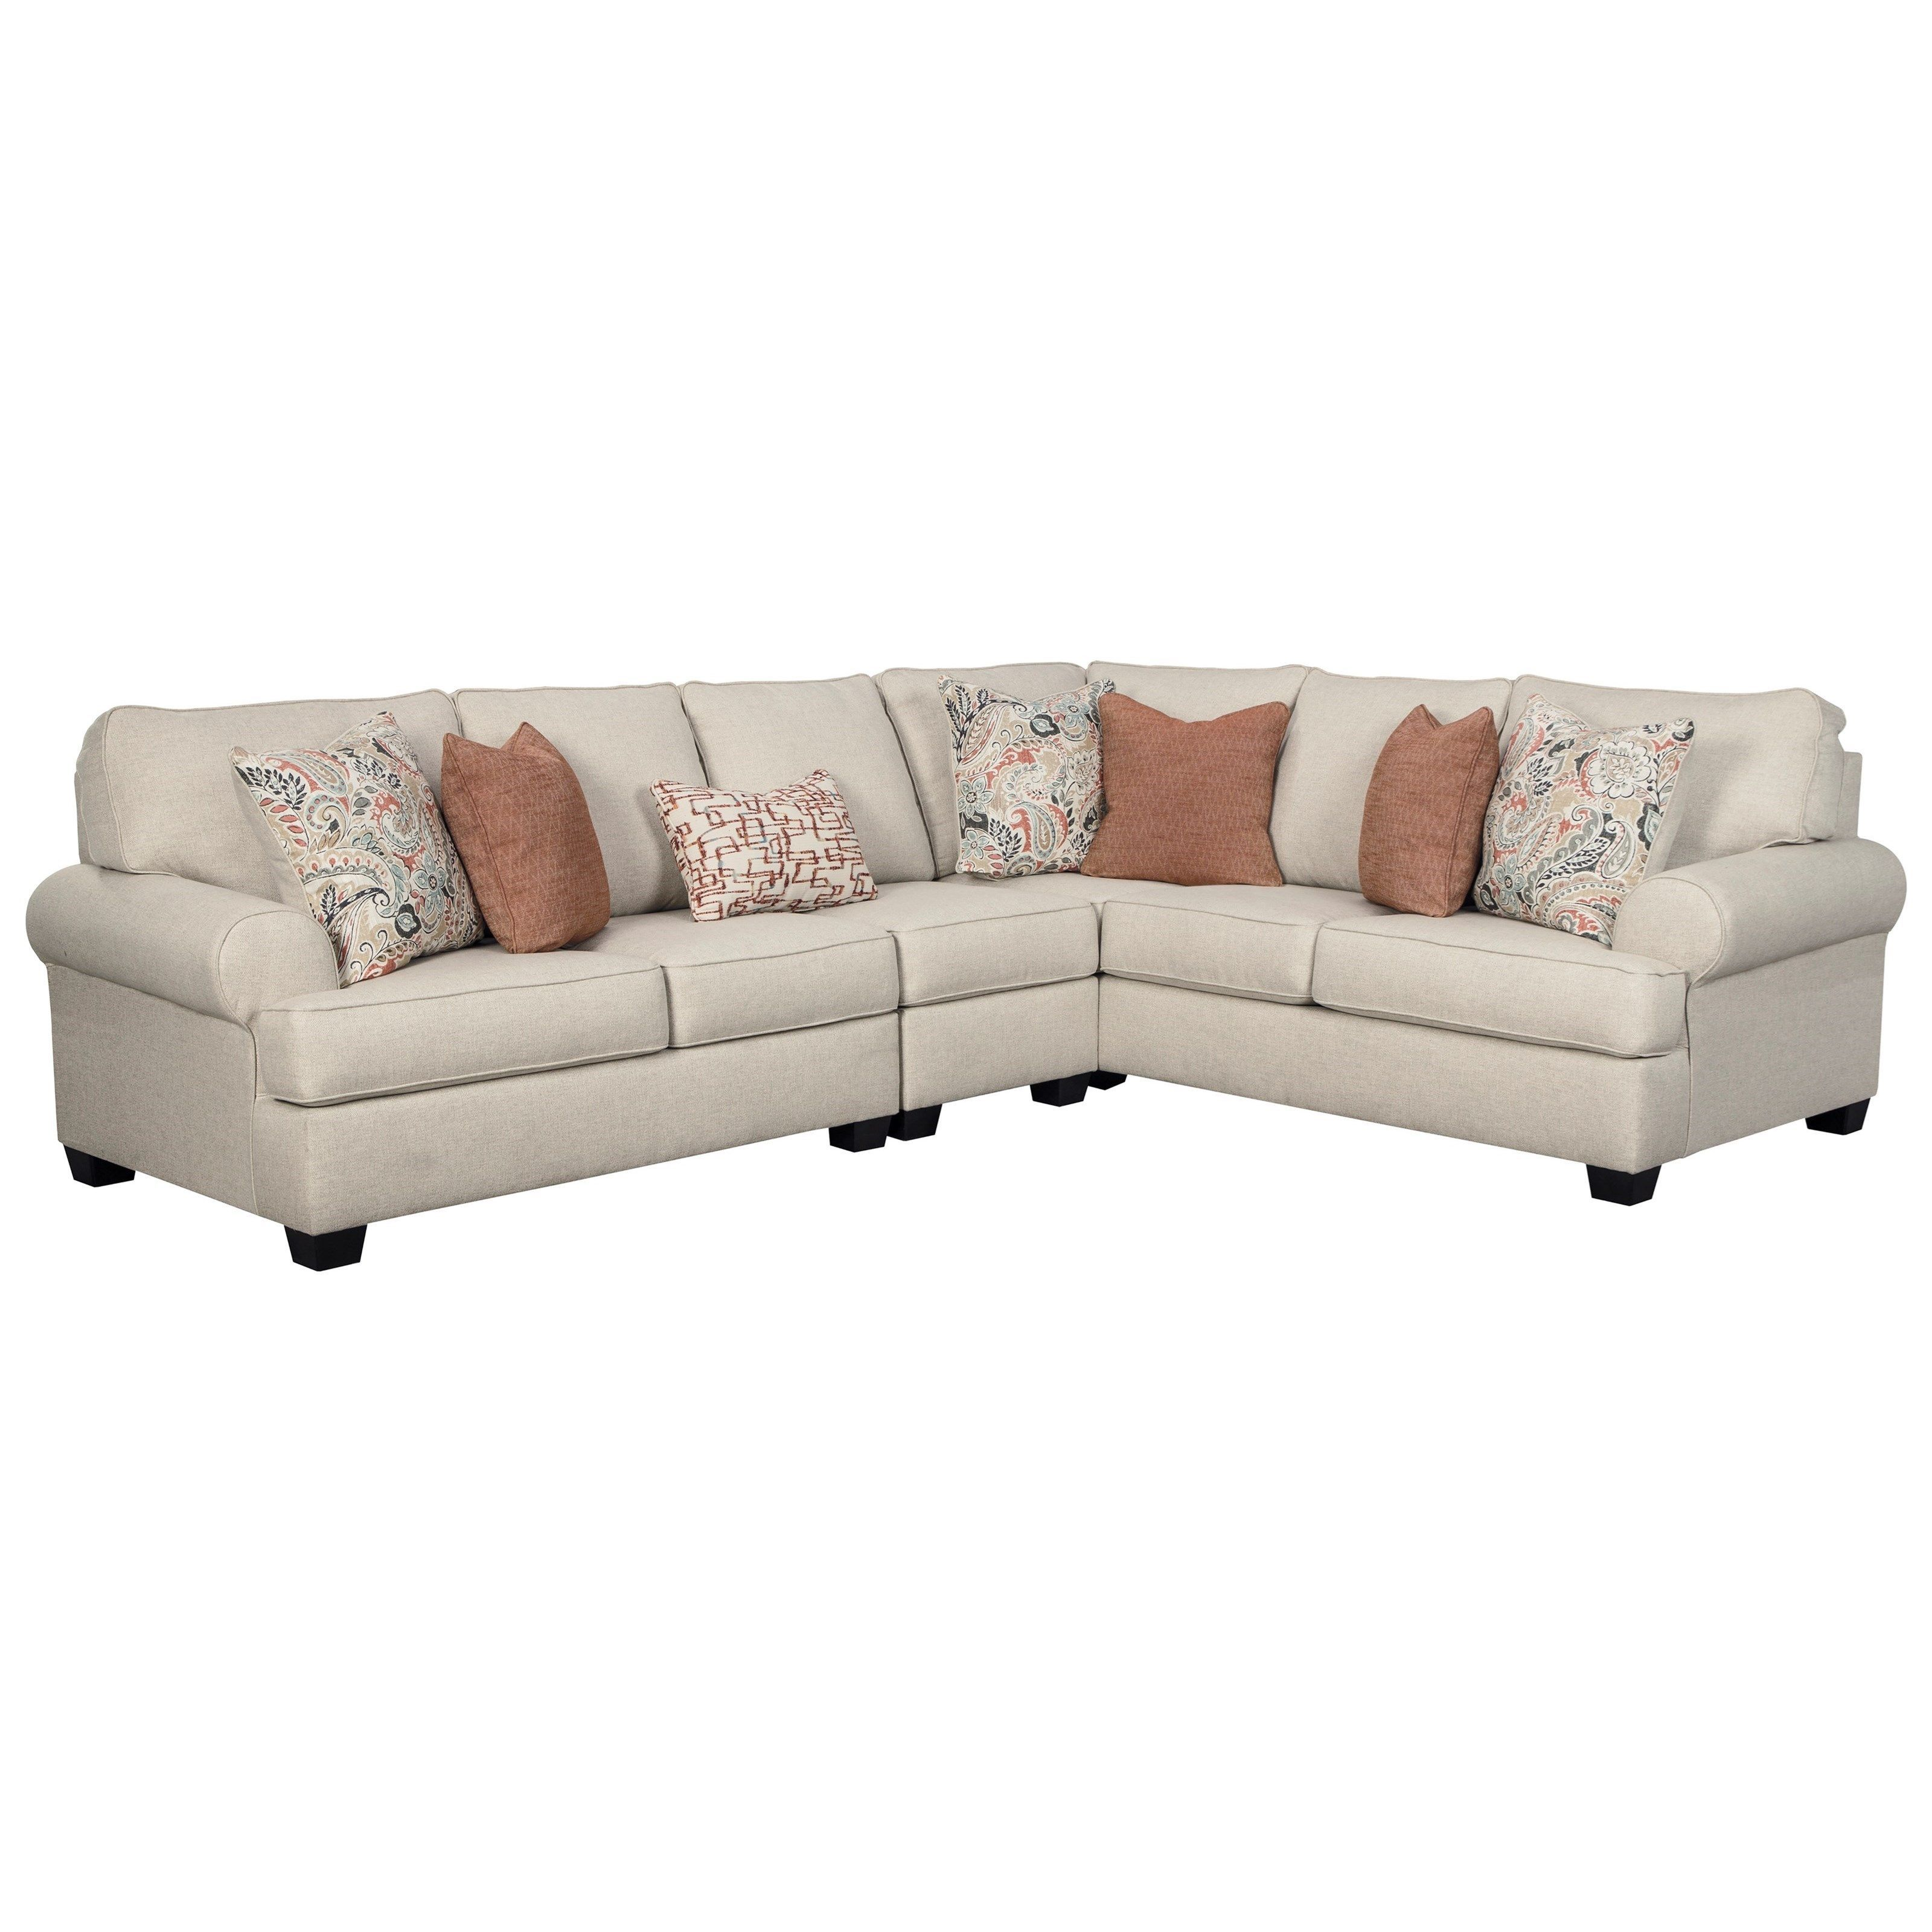 Amici 3 Piece Sectional By Signature Design By Ashley At Royal Furniture Value City Furniture Amici 3 Piece Sectional With Rolled Arms By Signature Design By A